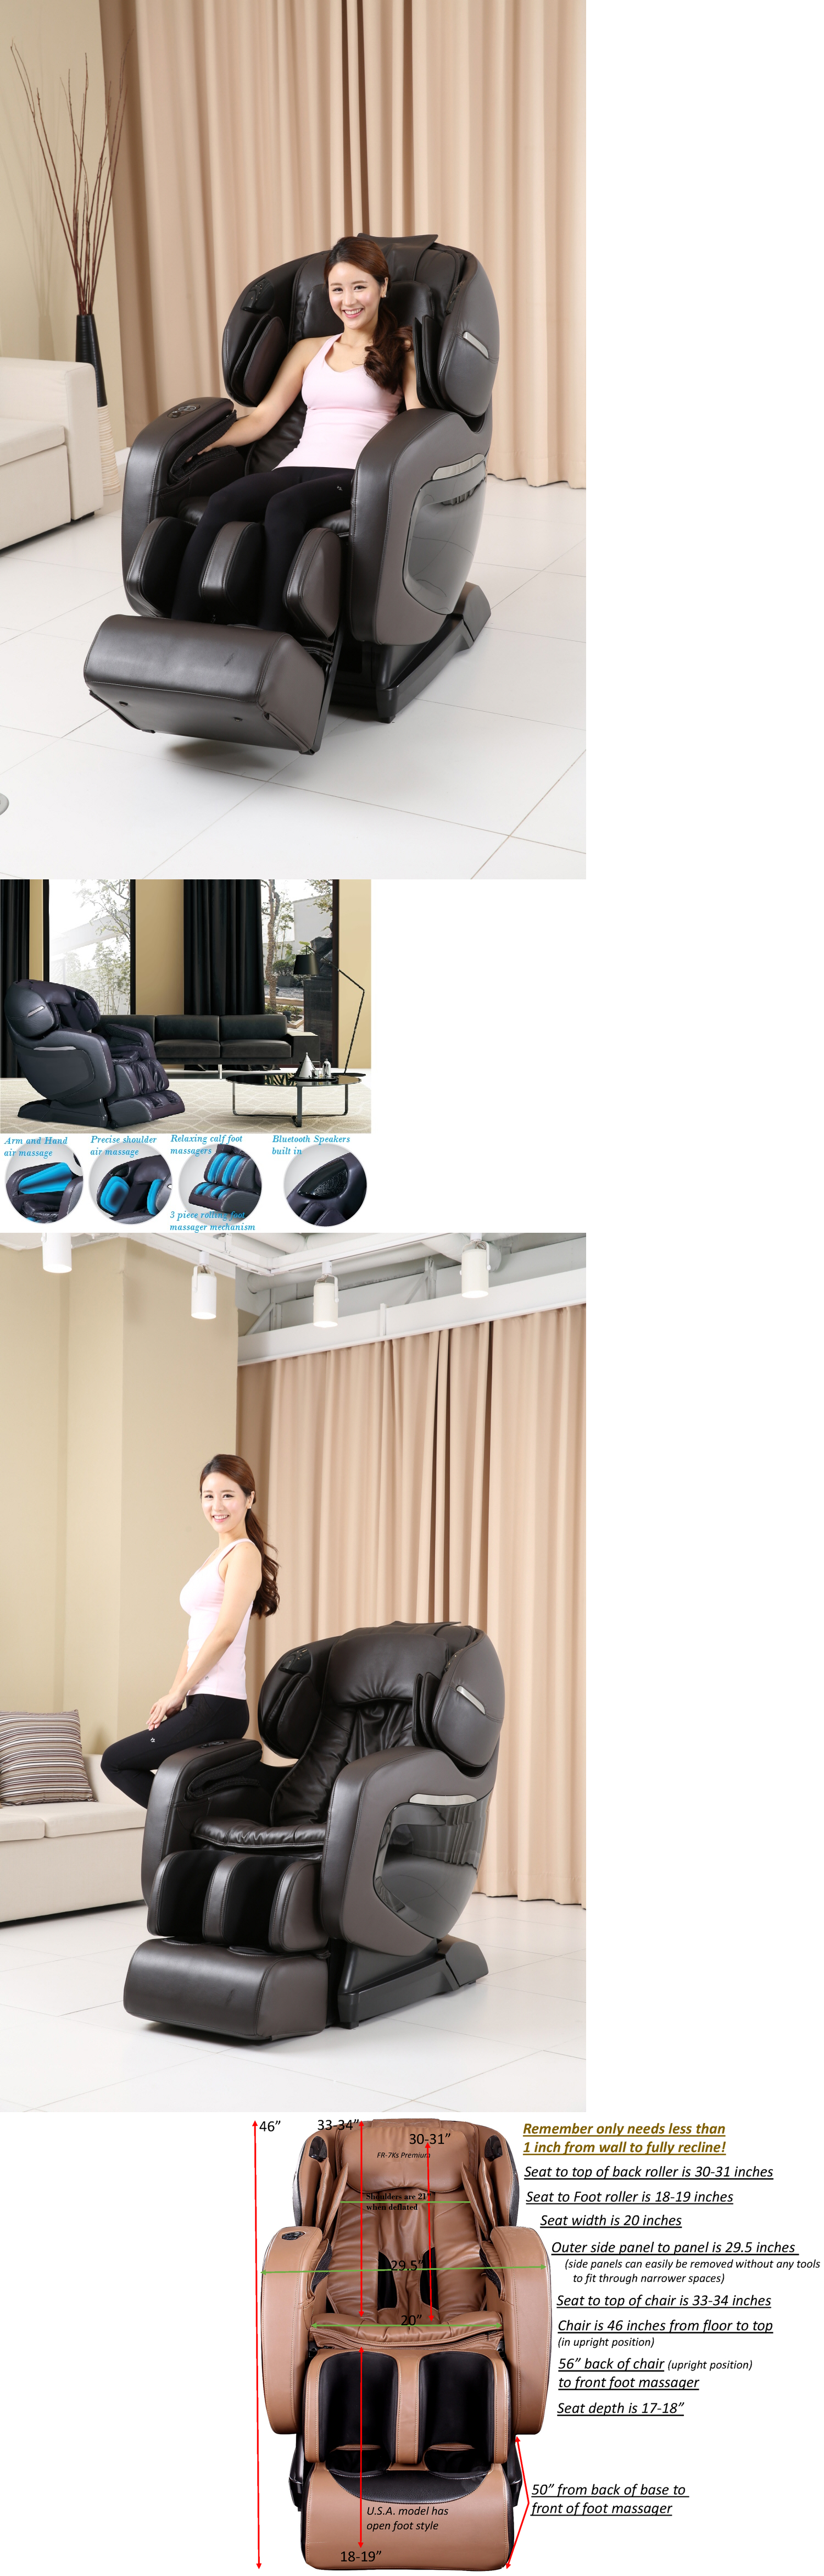 Electric Massage Chairs 2017 Forever Rest Fr 7K Premiuim L Track